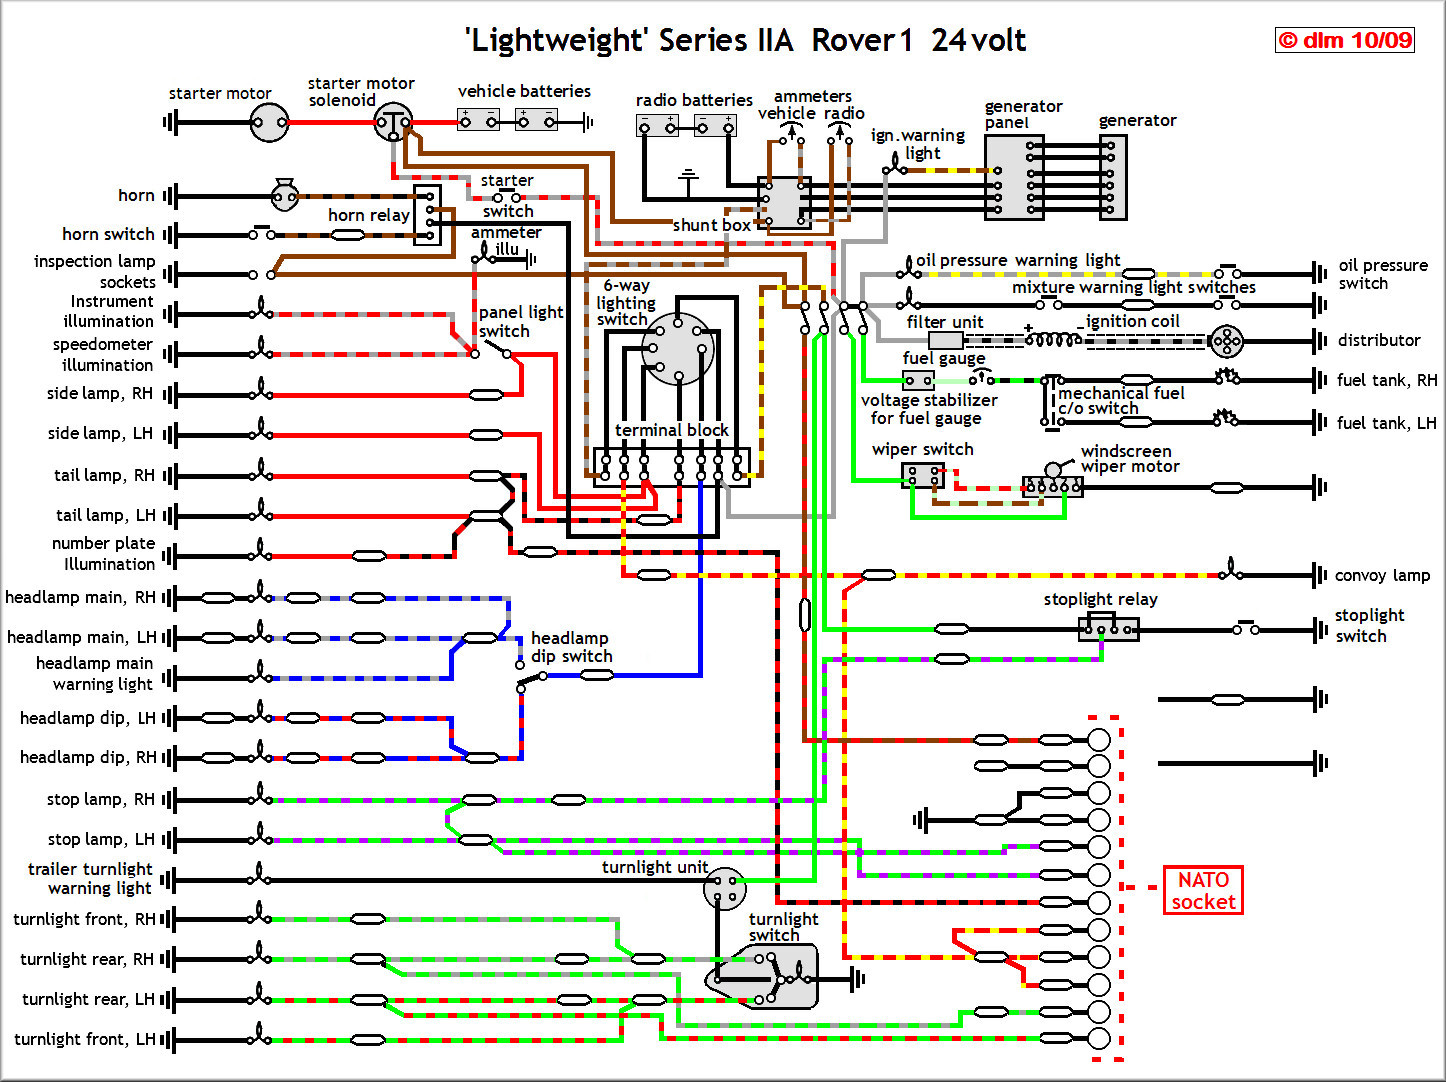 rover1 24Av land rover wiring harness land wiring diagrams instruction land rover wiring harness at panicattacktreatment.co